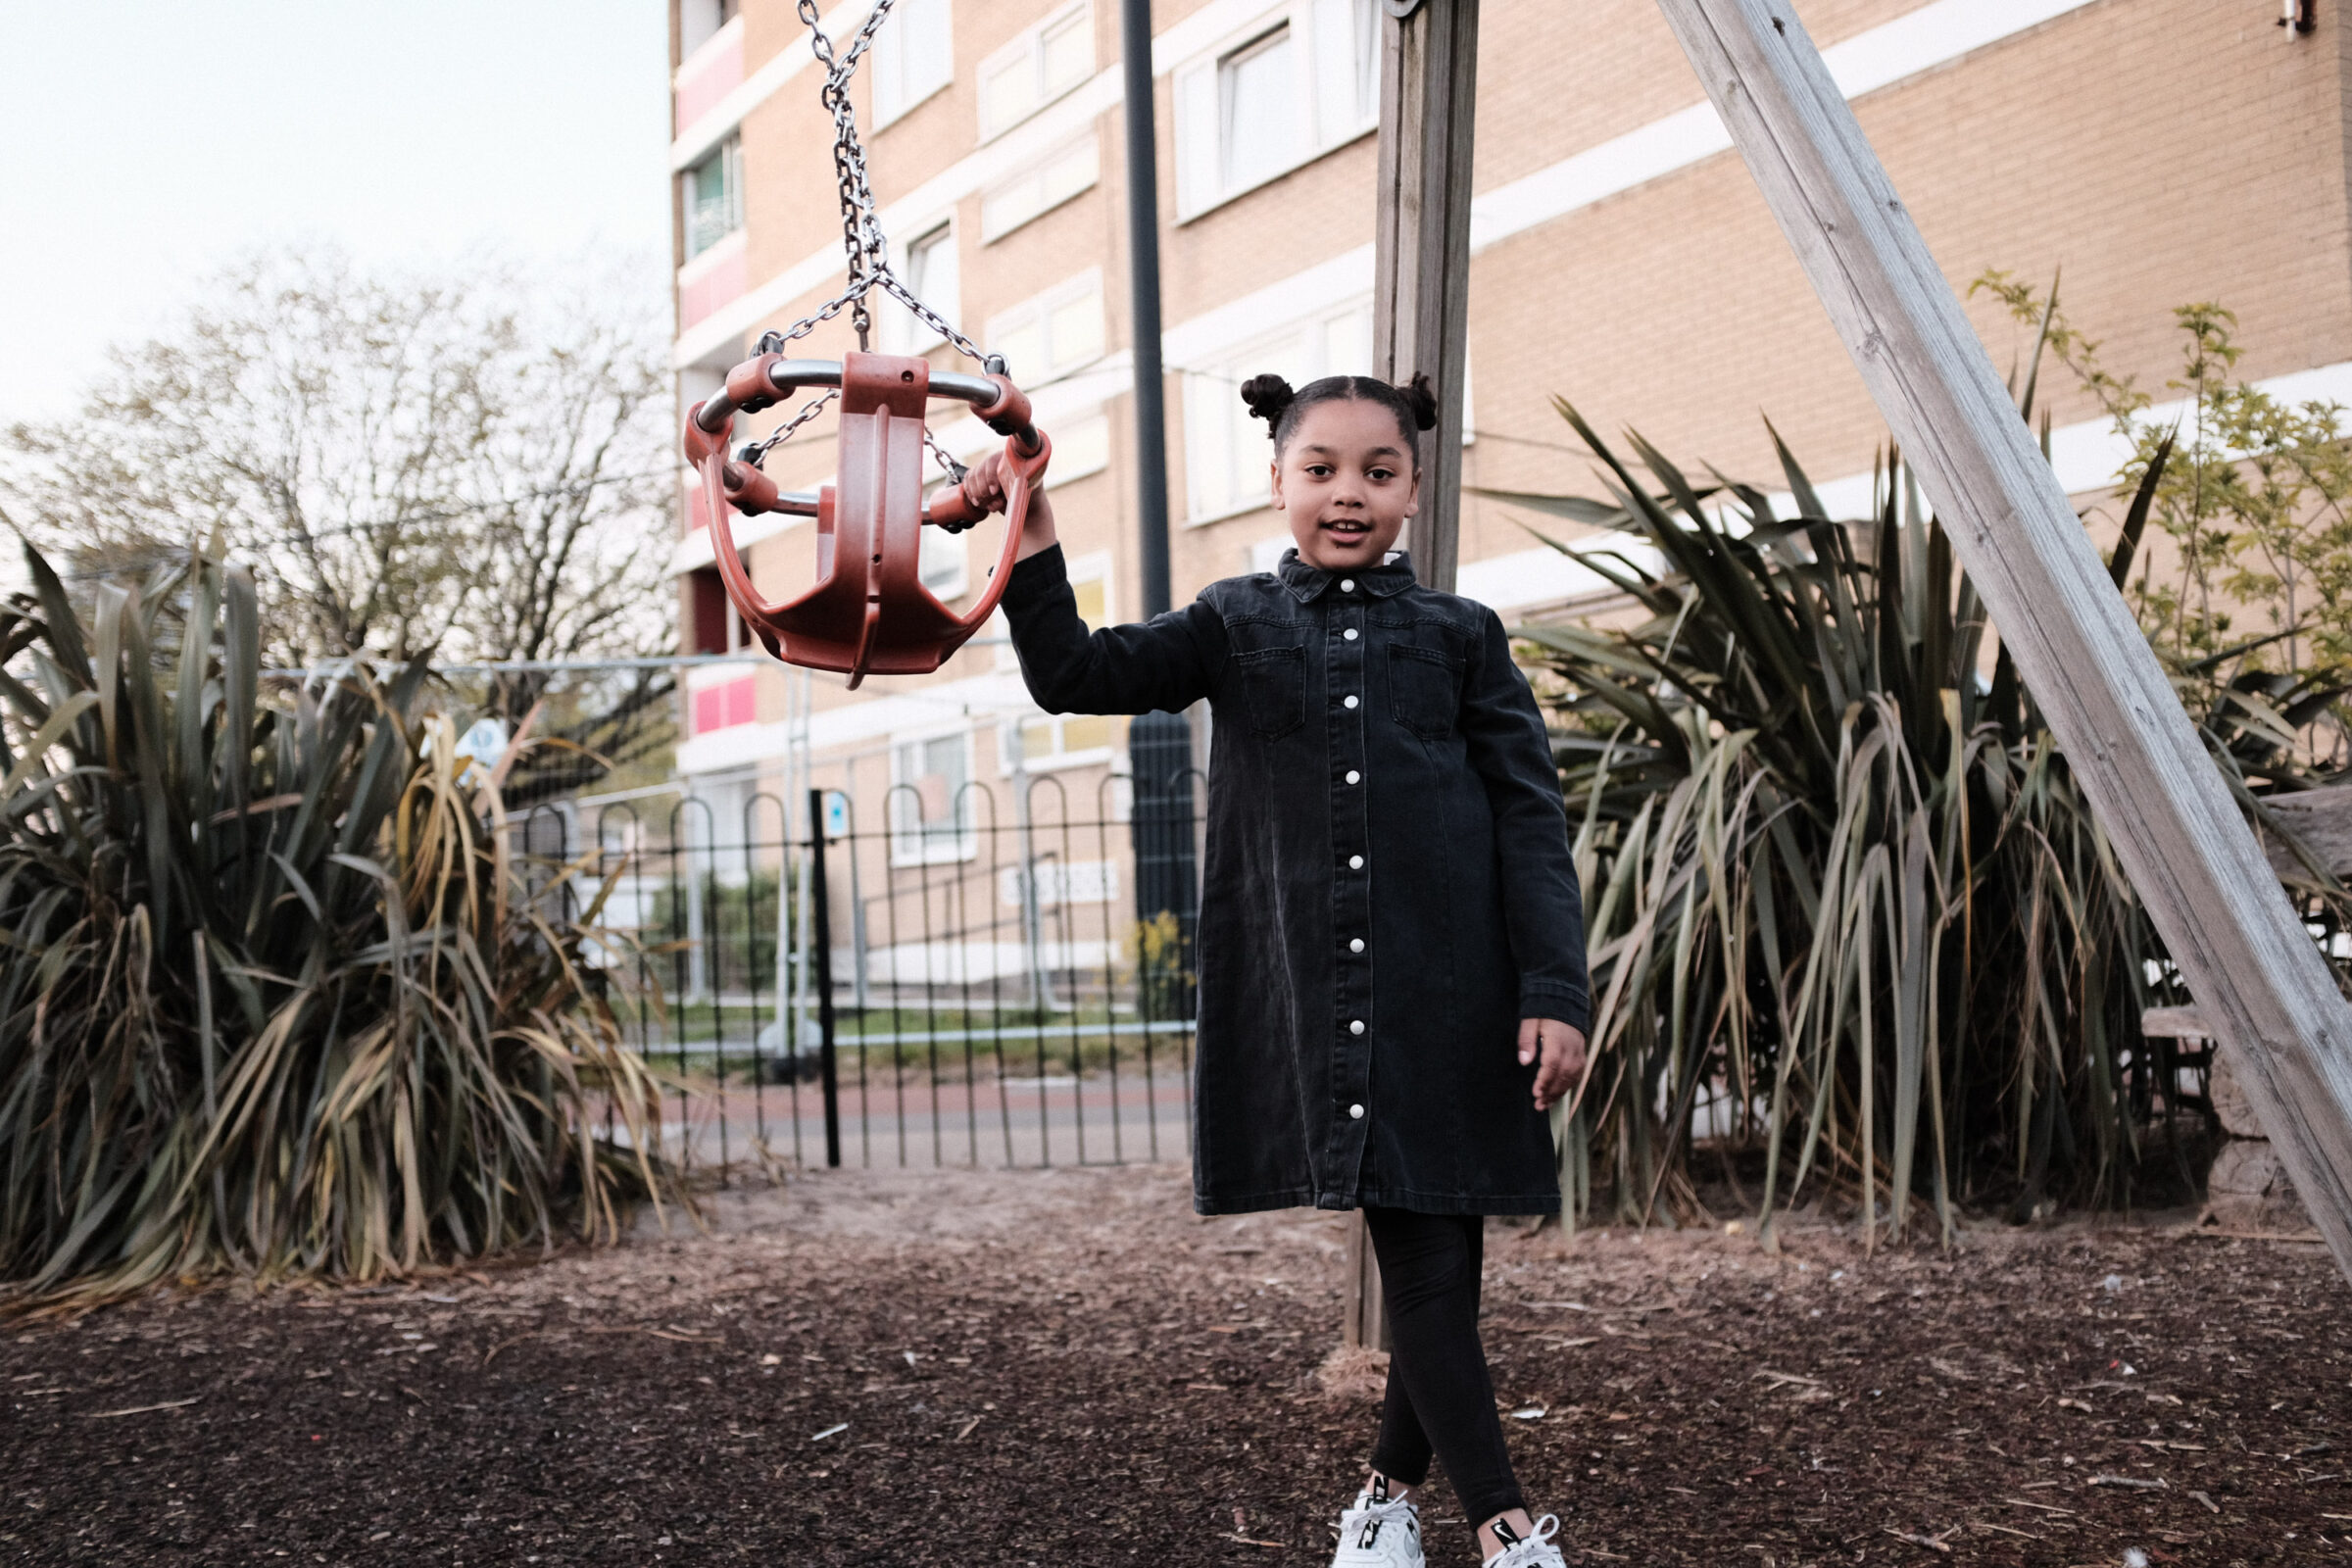 A girl poses next to a set of swings with buildings in the background